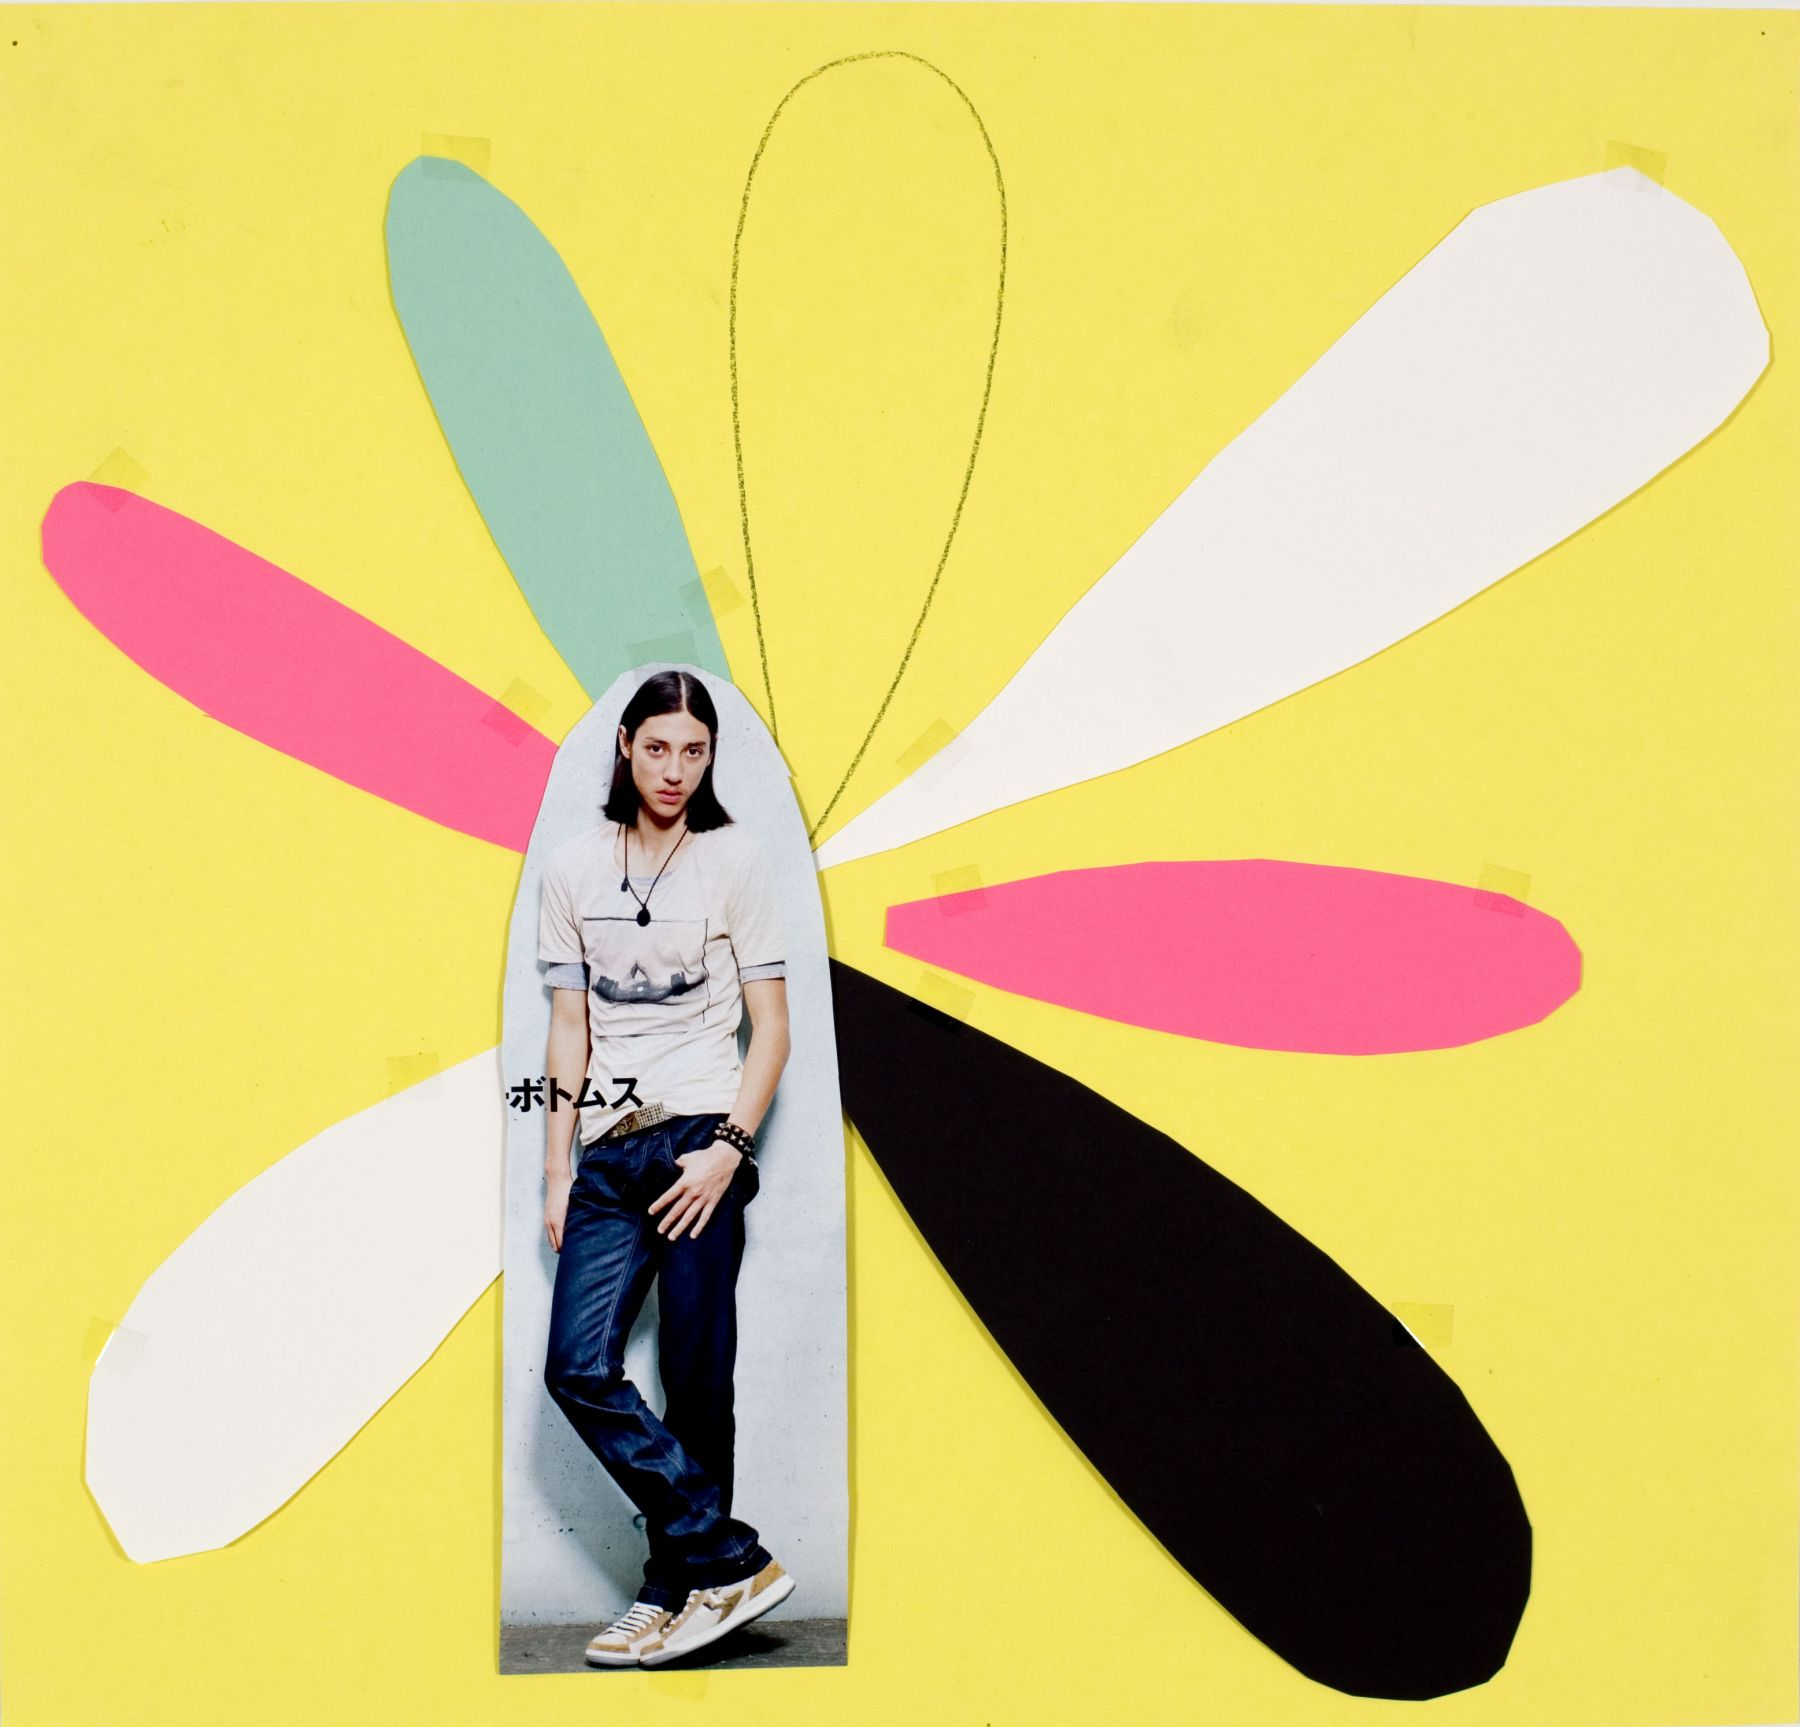 Dragonfly 8, 2009, collage, 19 3/4 x 20 1/2 inches